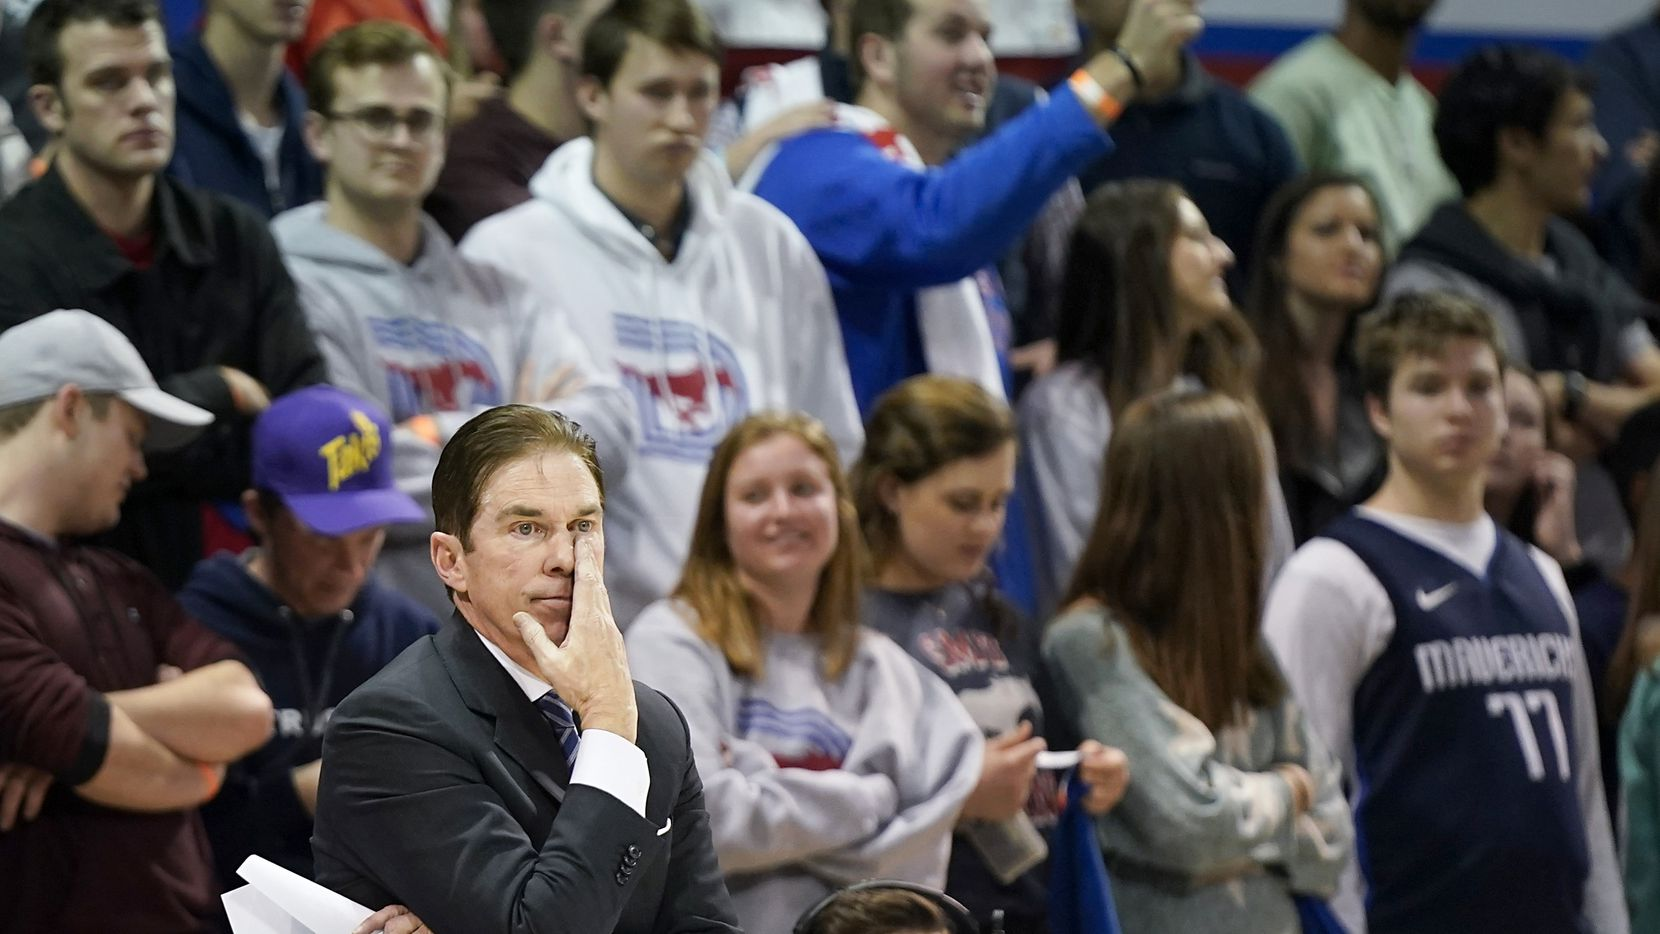 SMU head coach Tim Jankovich watches from the bench during the second half of an NCAA basketball game against Tulane at Moody Coliseum on Saturday, Feb. 1, 2020, in Dallas. SMU won the game 82-67.